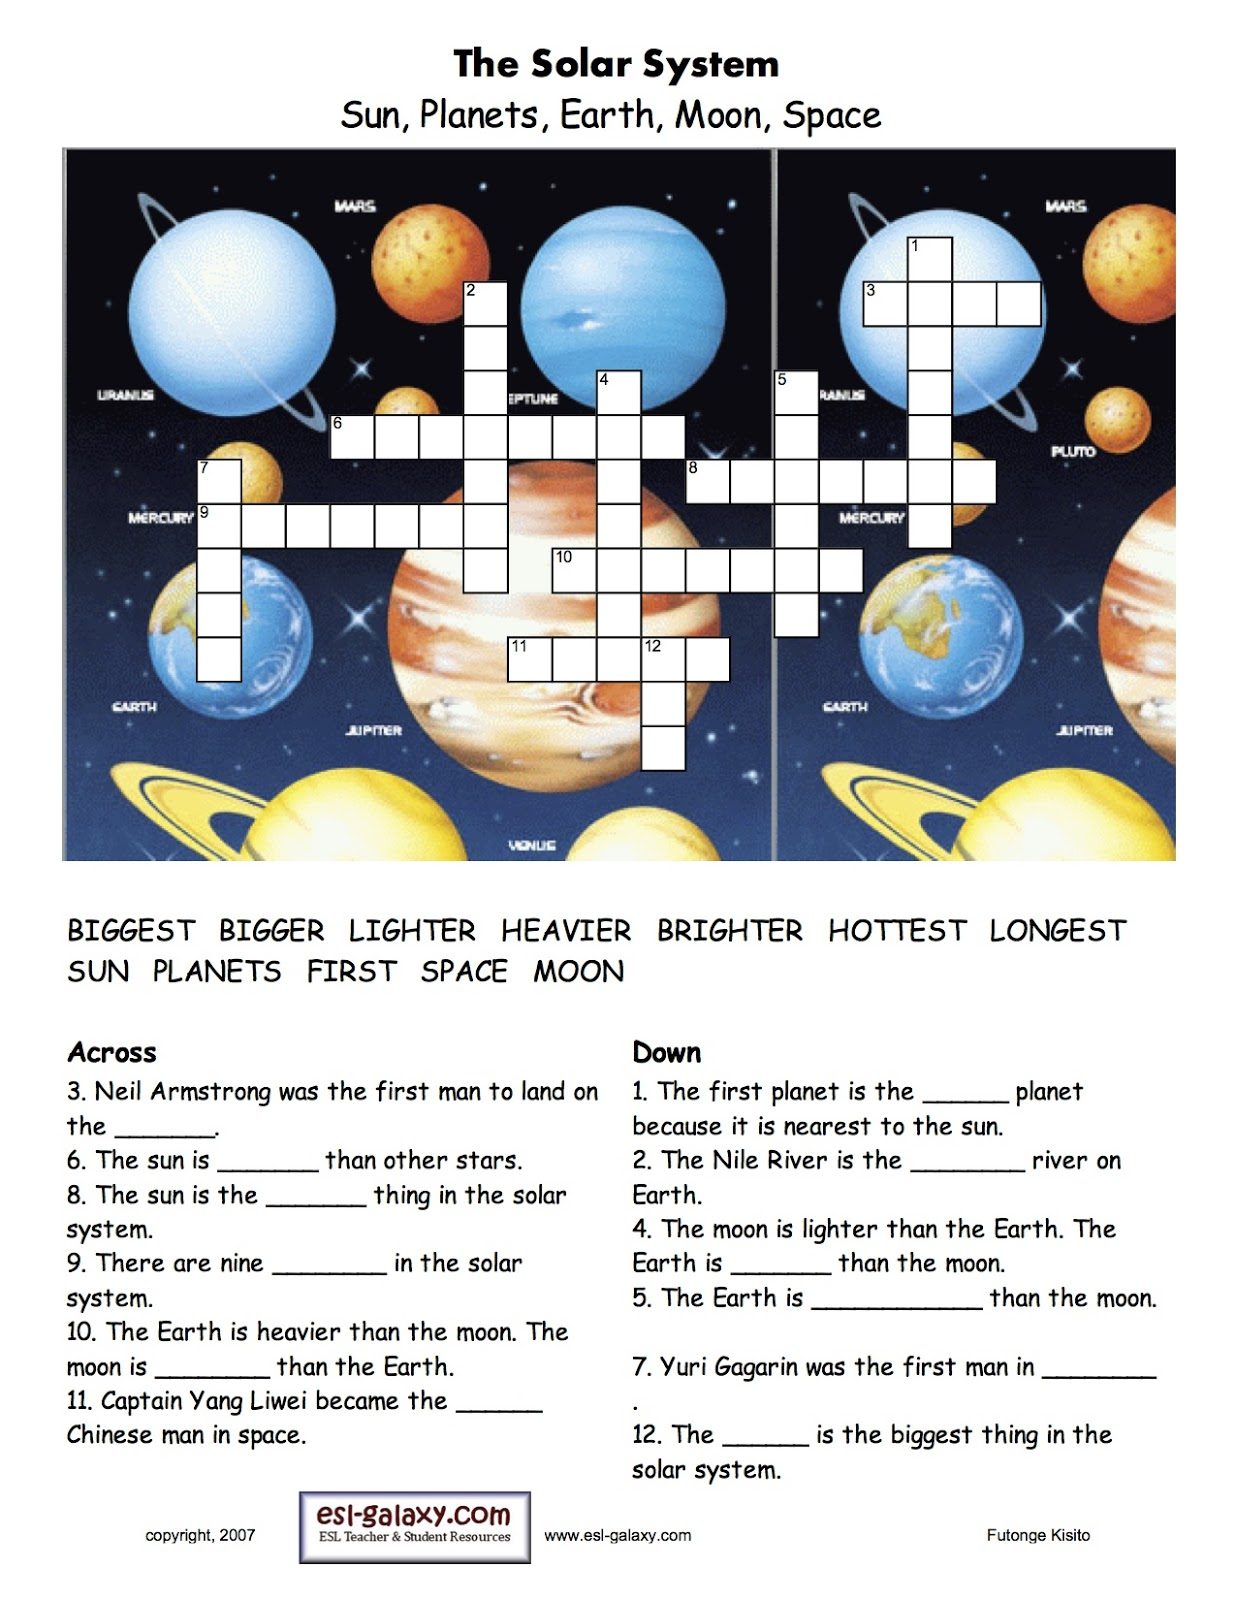 Solar System Puzzle Worksheet - Pics about space